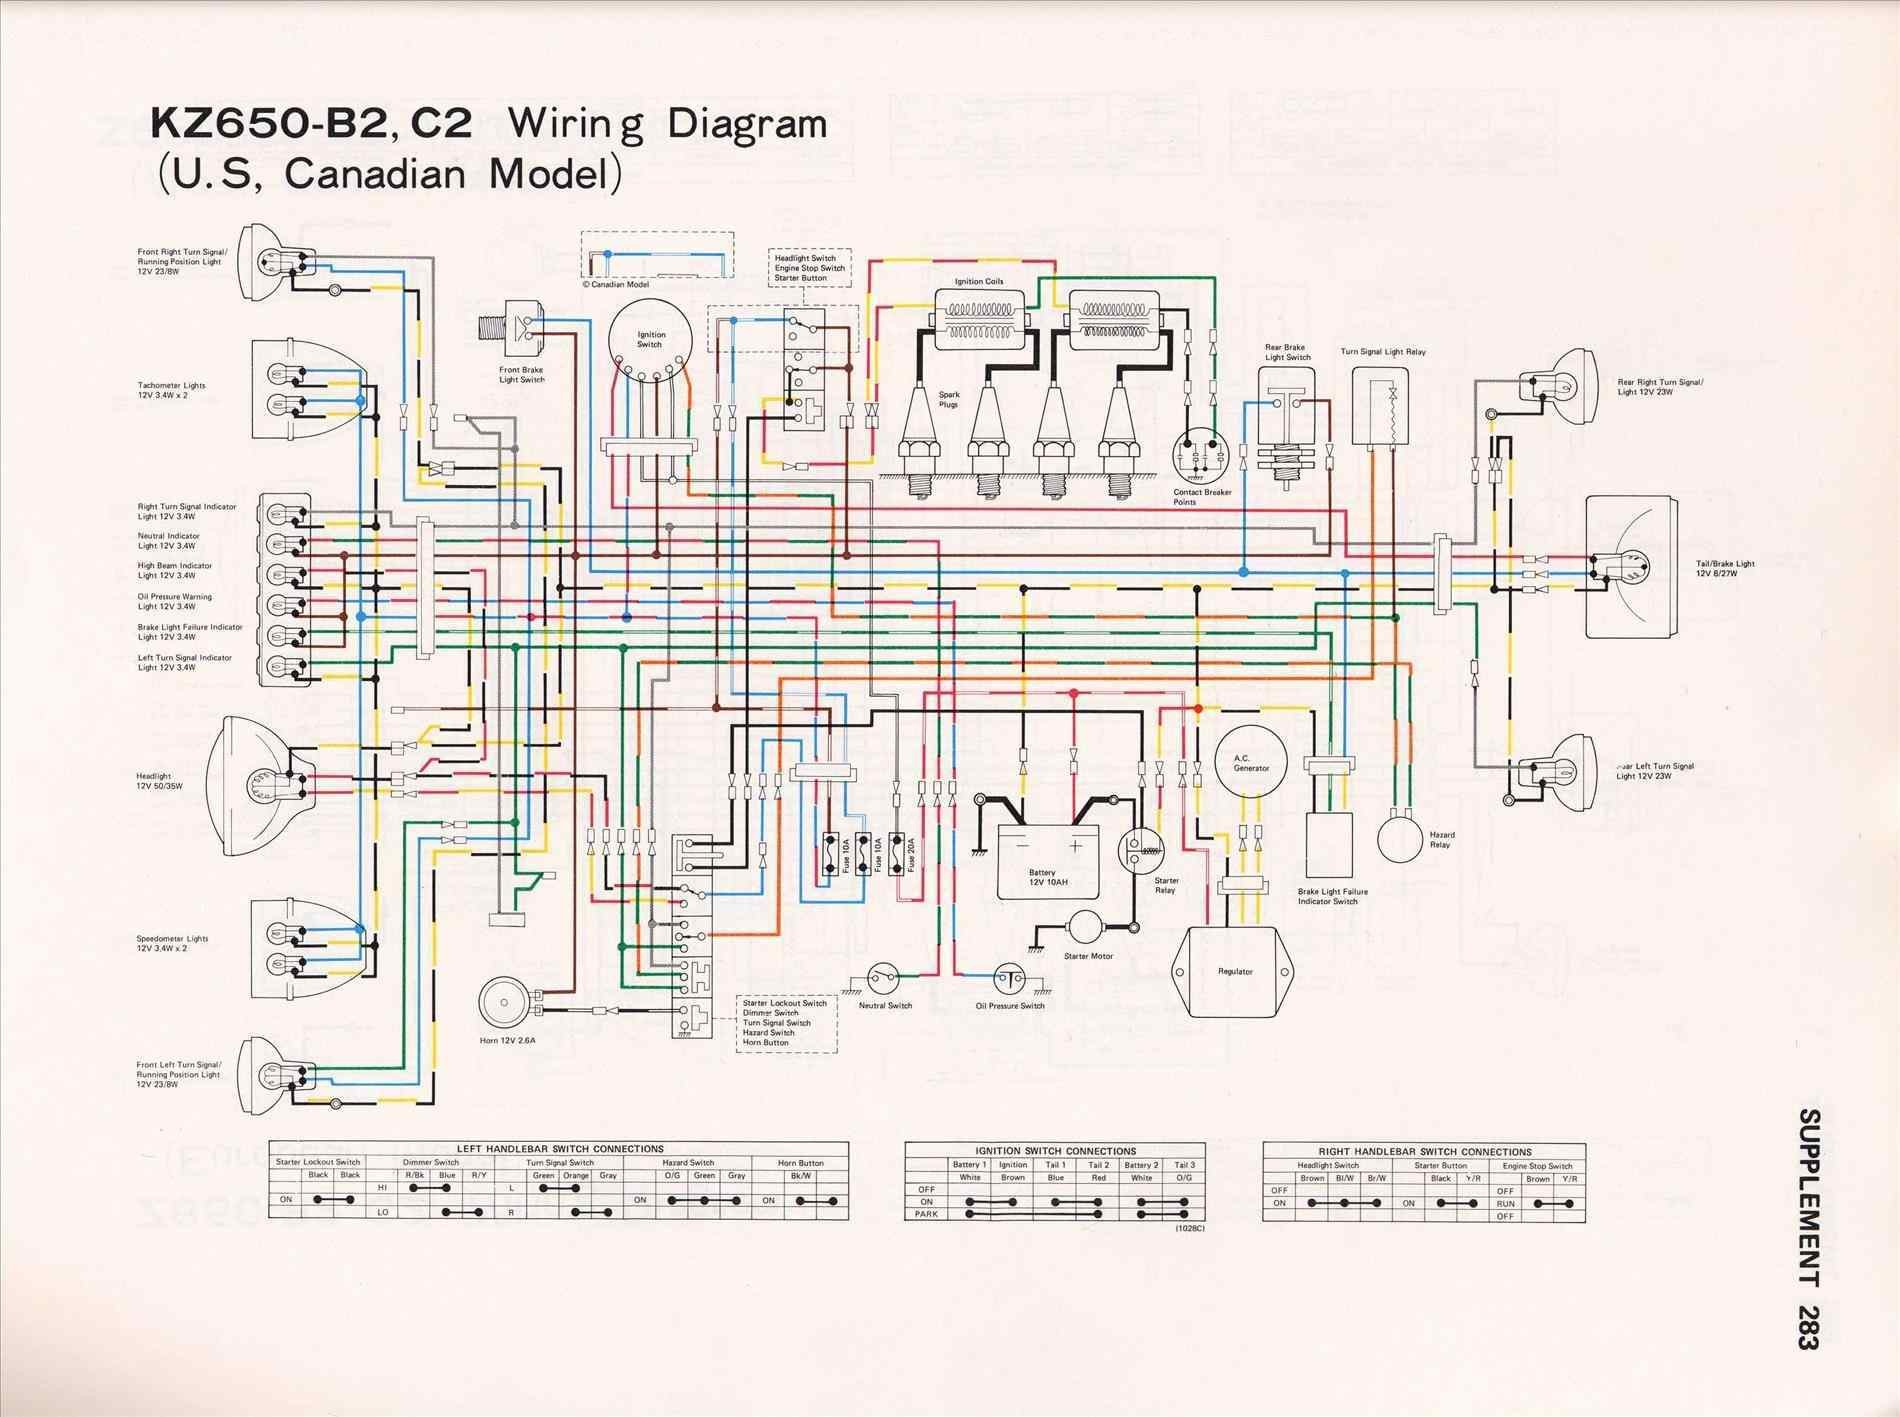 2008 Keystone Wiring Diagram FULL Version HD Quality Wiring Diagram -  TOMEDIAGRAM.LABO-WEB.FRtomediagram.labo-web.fr